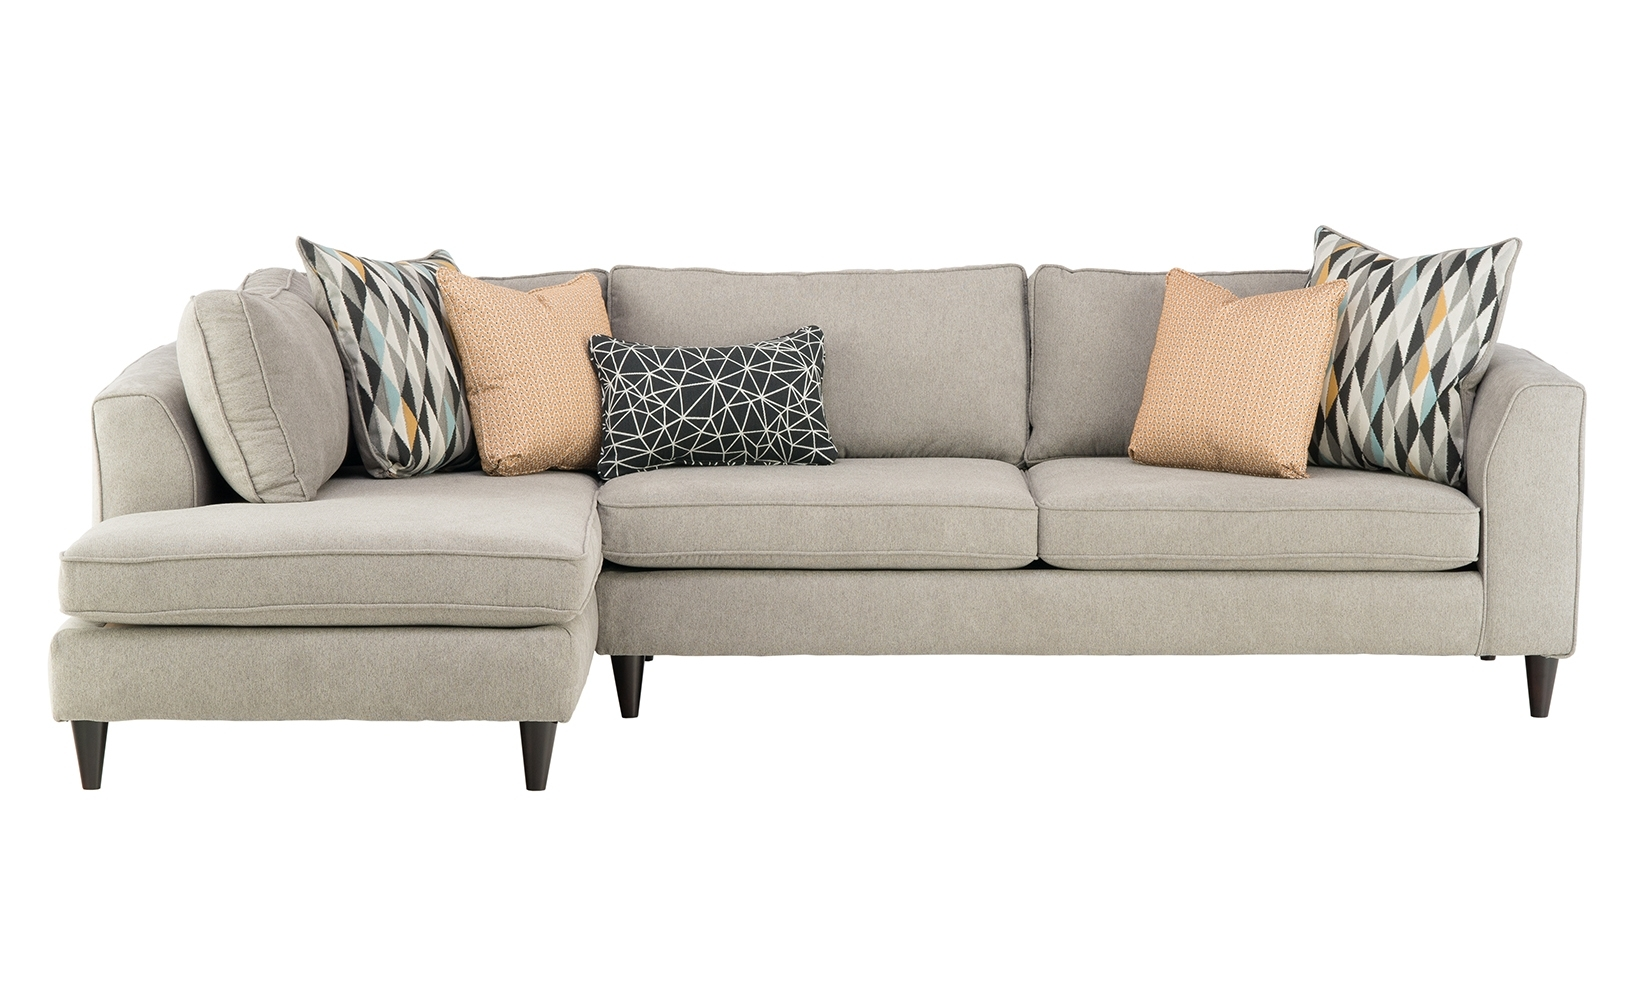 Living Room Sofa Sectionals And Theater Seating | Schneiderman's With Regard To Duluth Mn Sectional Sofas (Image 3 of 10)